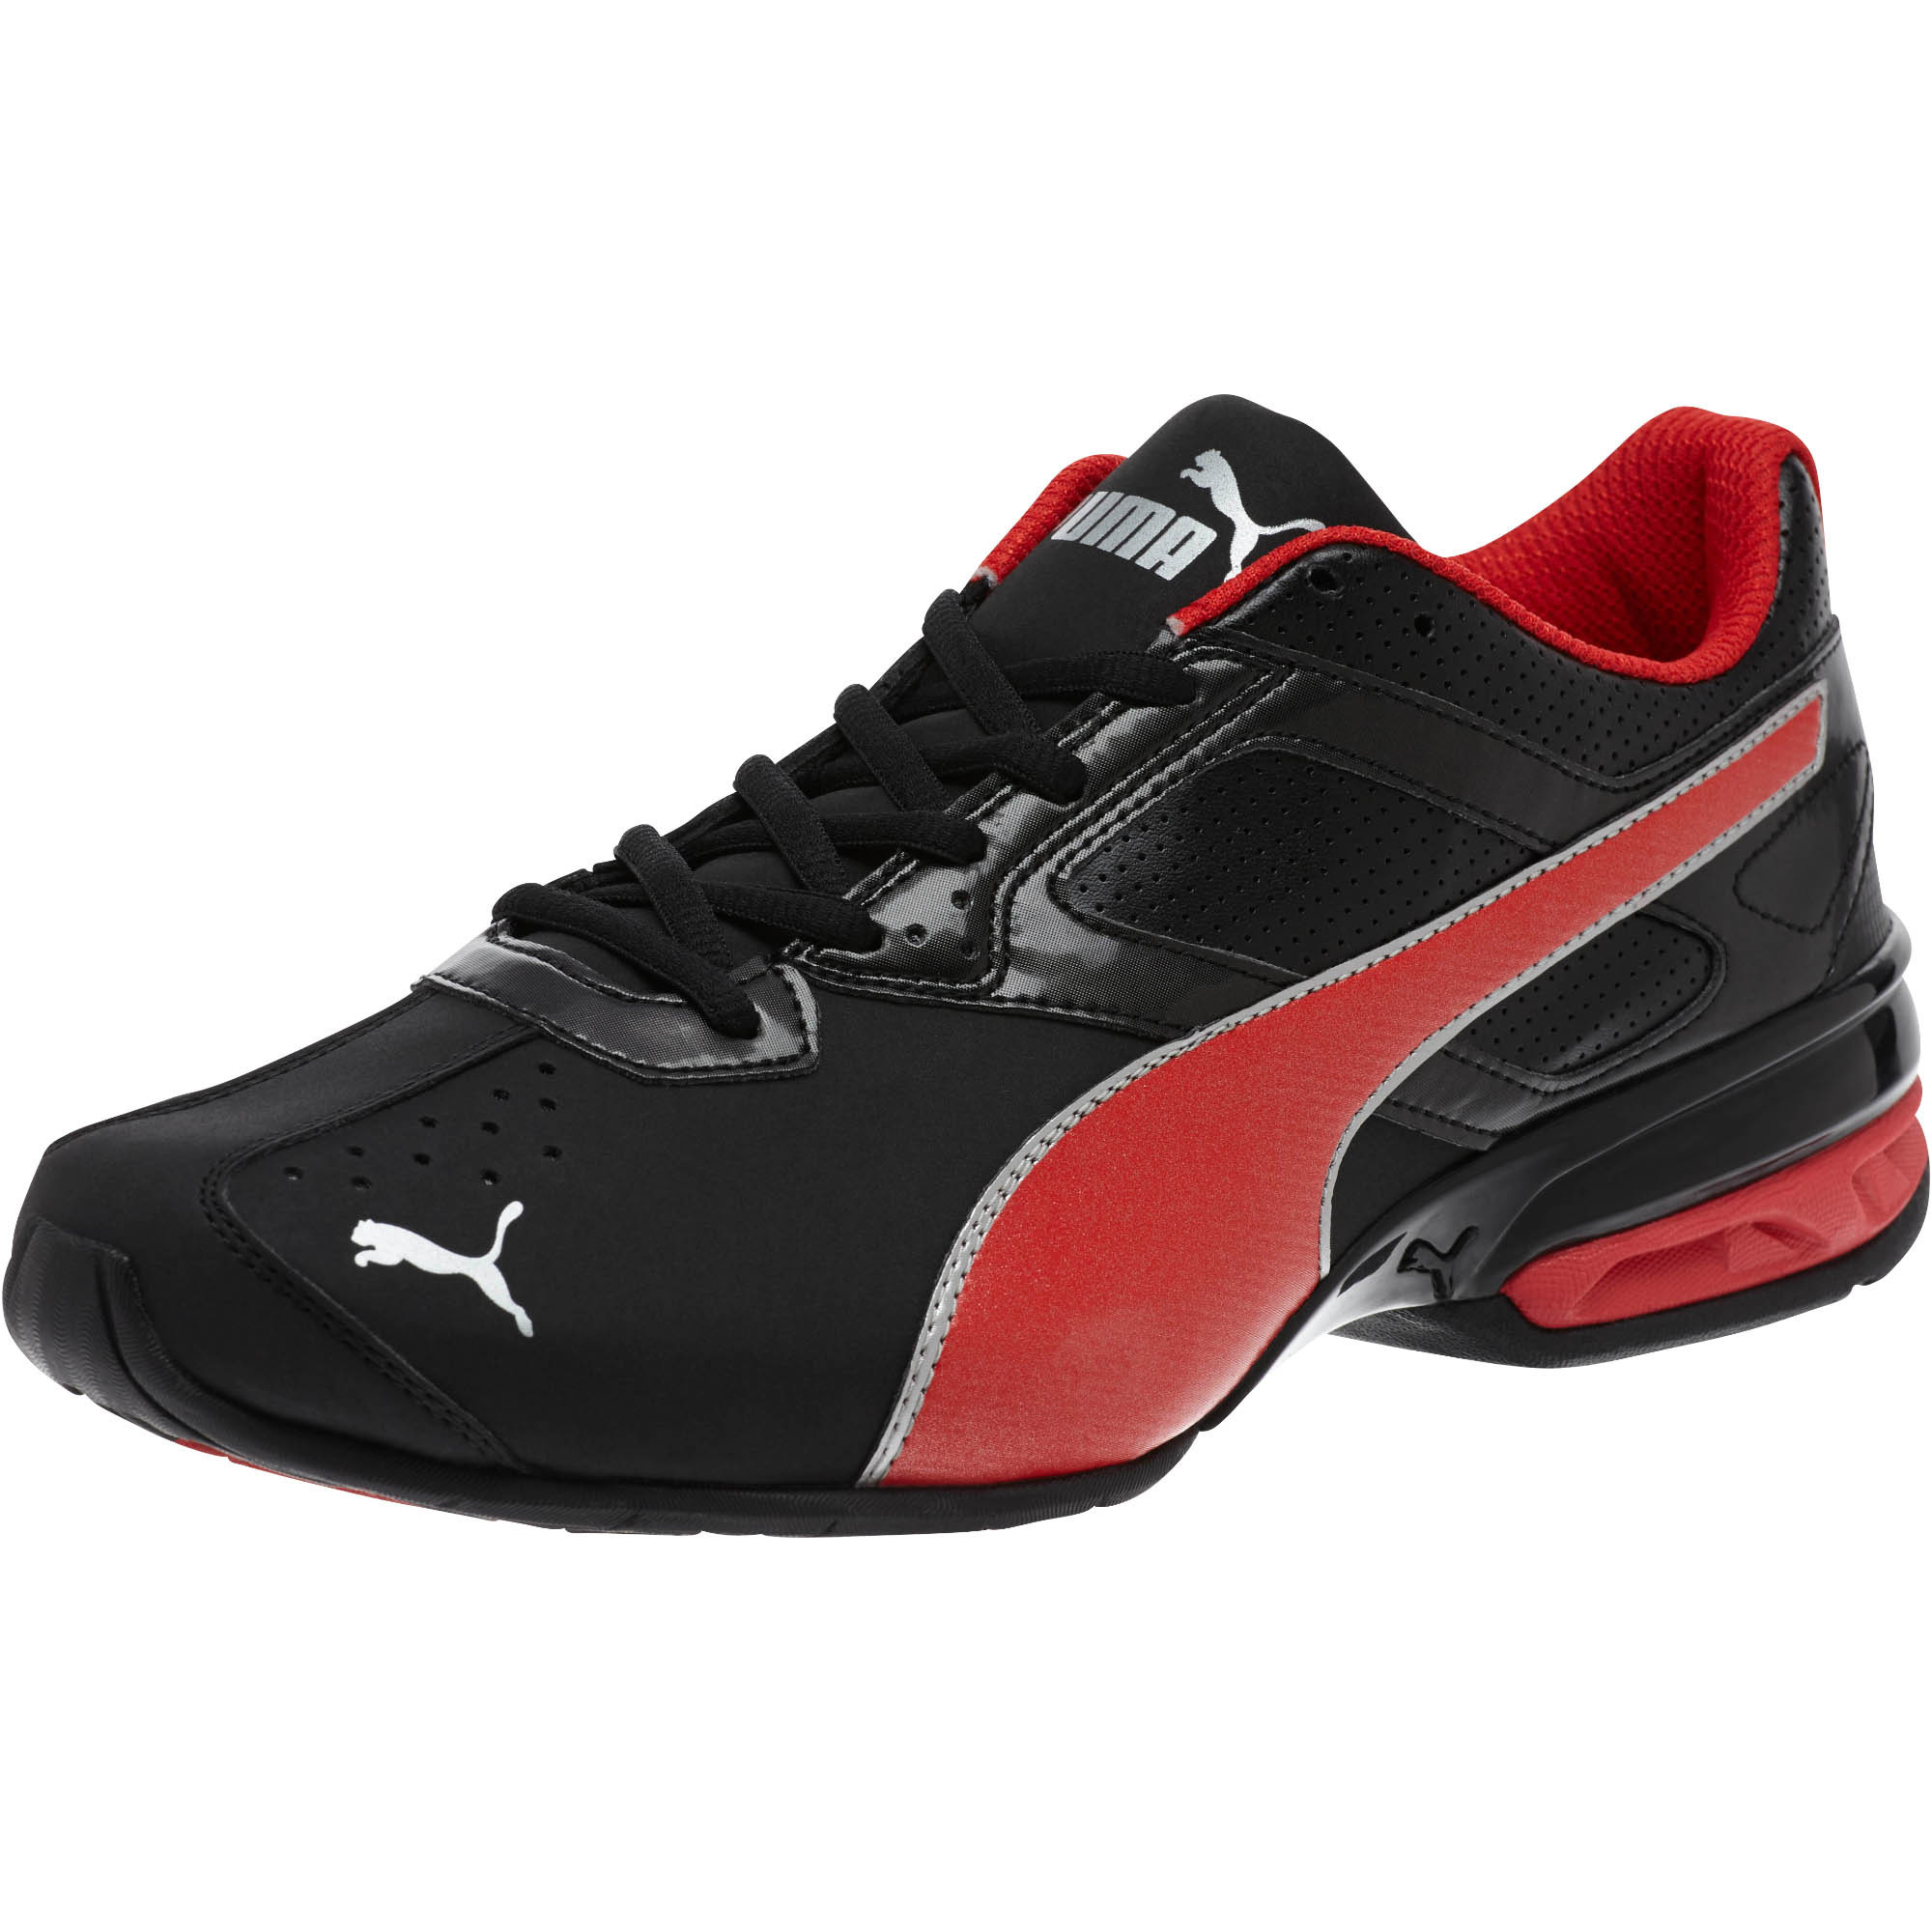 PUMA-Tazon-6-FM-Men-039-s-Sneakers-Men-Shoe-Running thumbnail 10